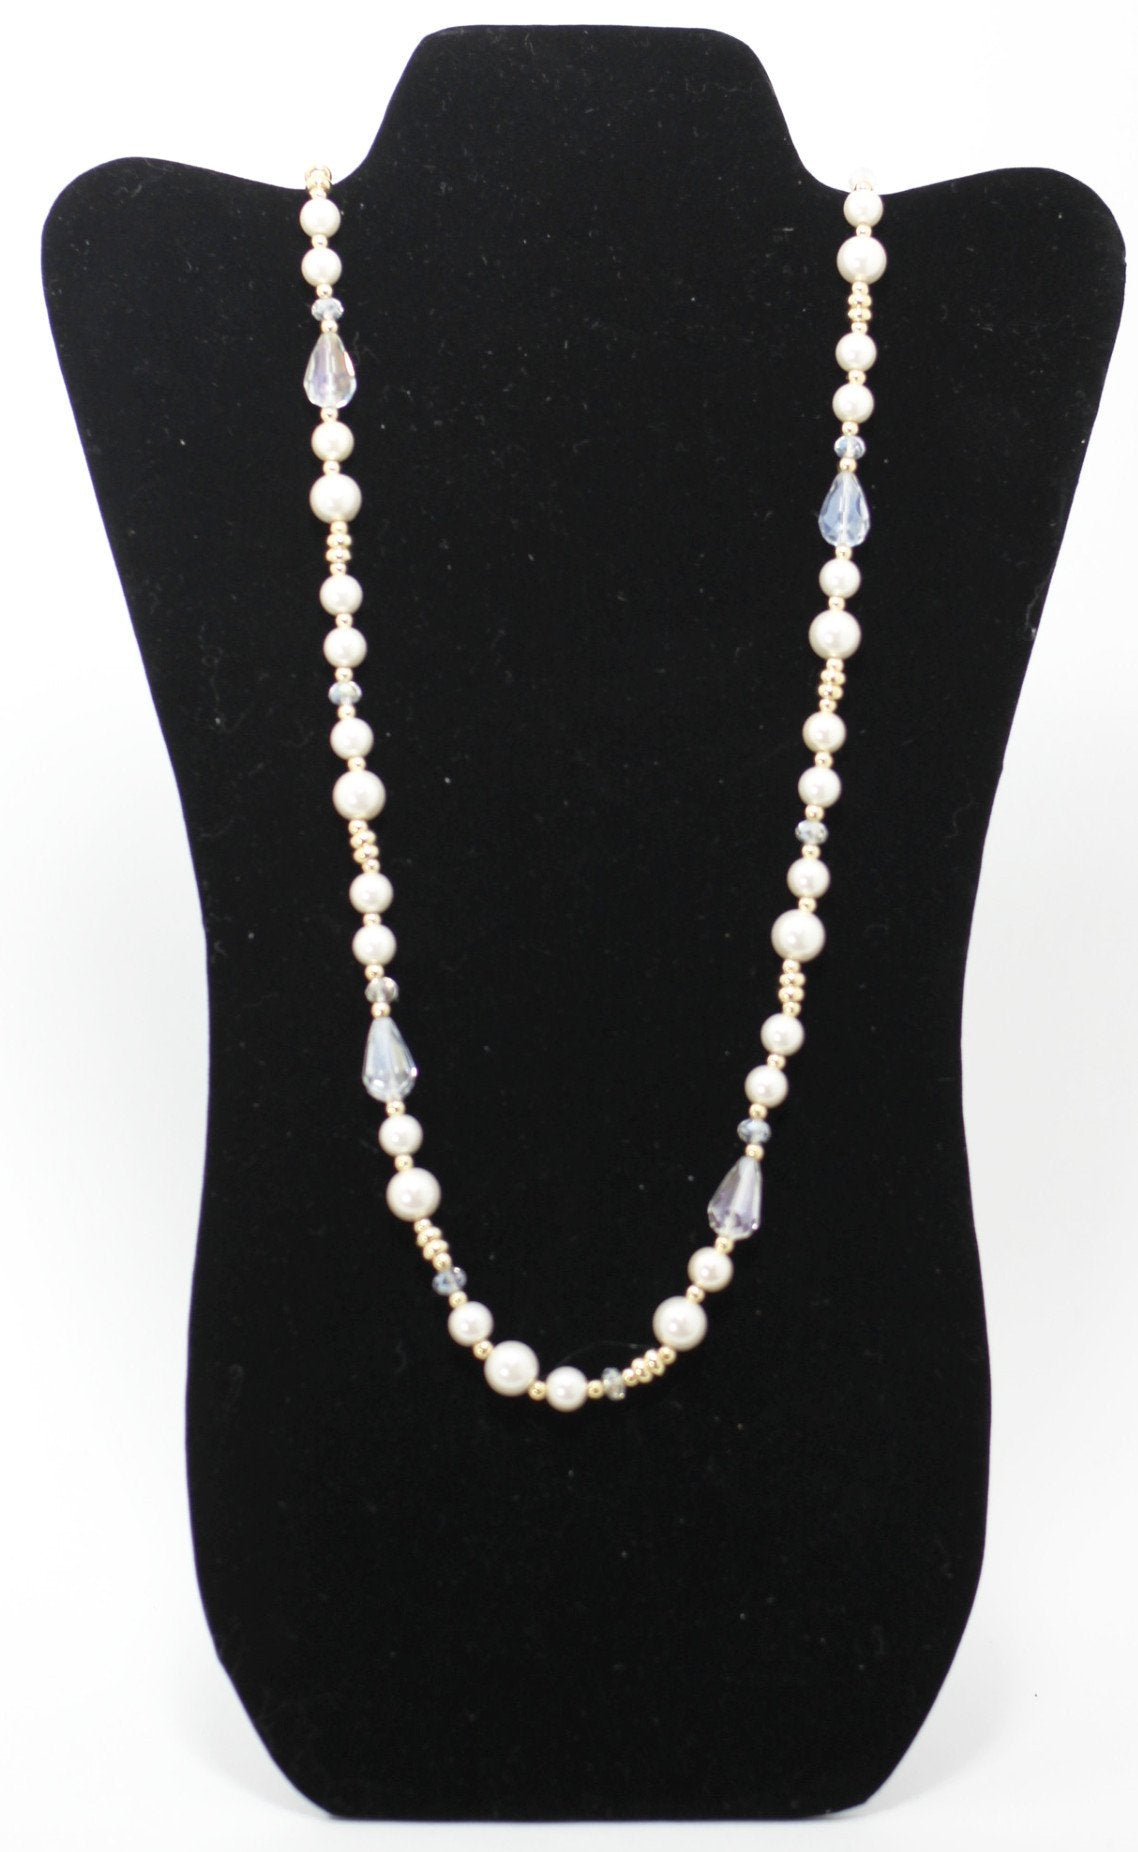 White Crystal Beaded Pearl Necklace - Donated From The Designer